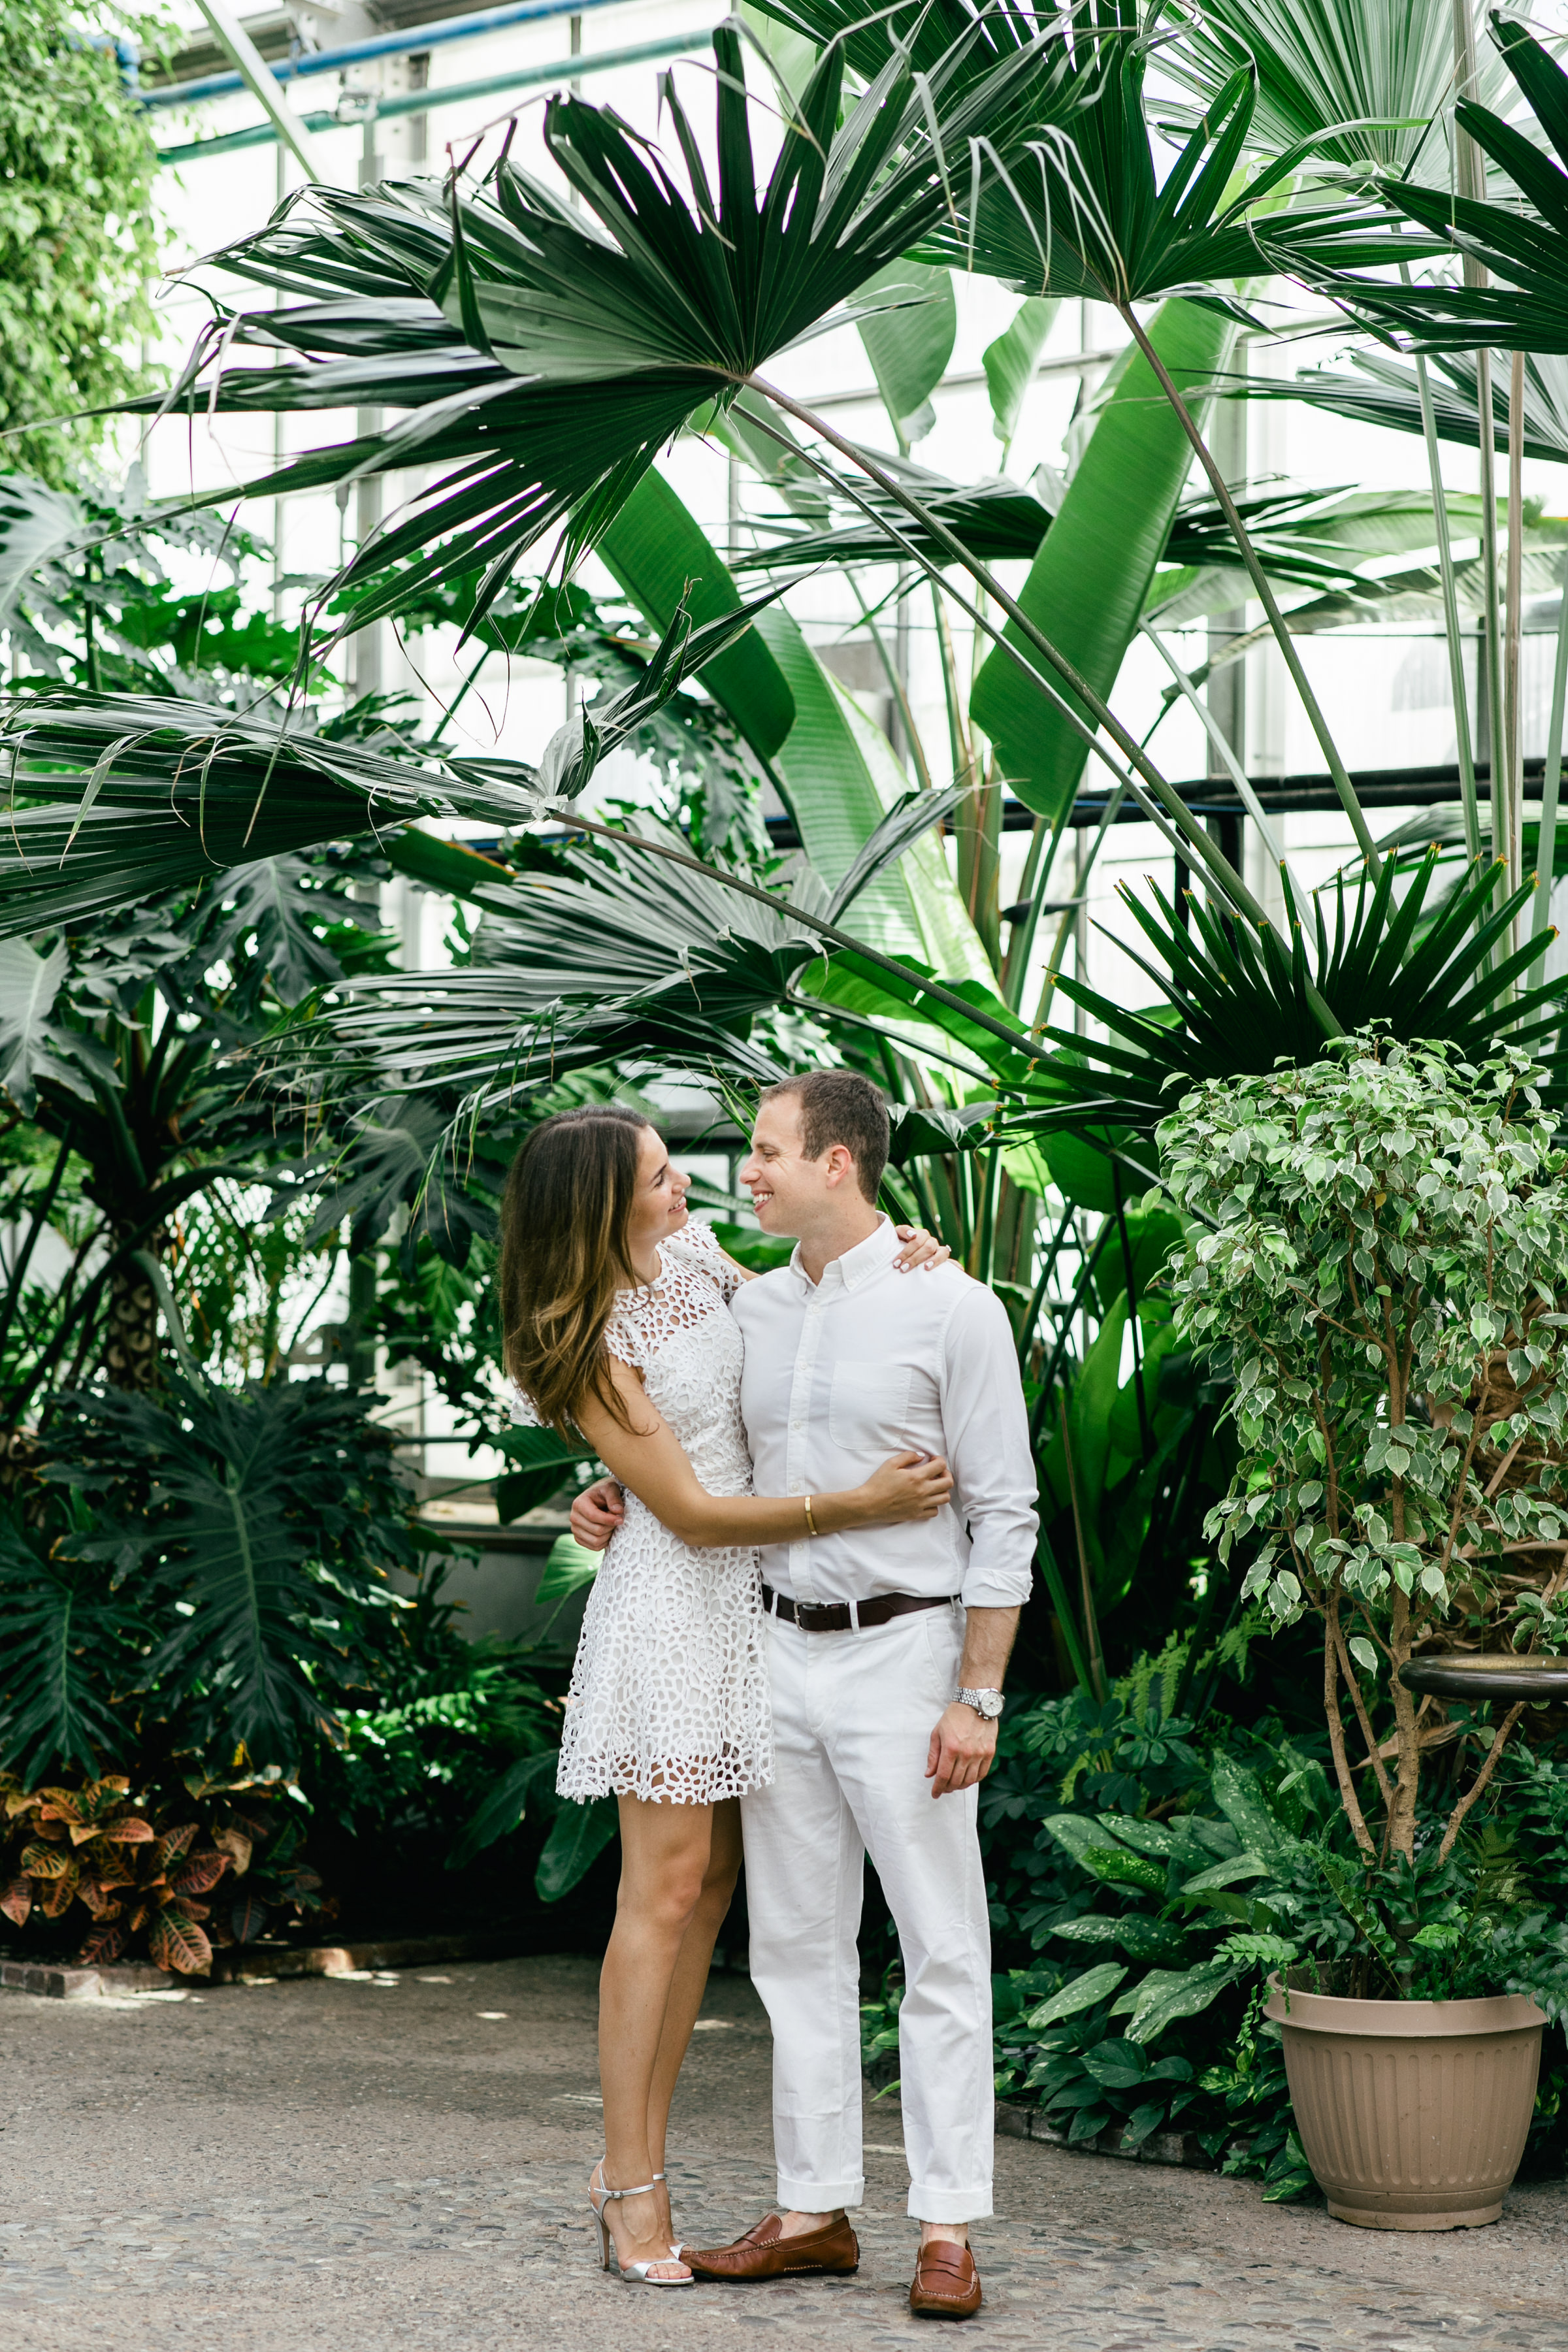 photography-family-natural-candid-engaged-fairmount-philadelphia-wedding-horticultural center-modern-lifestyle-09.JPG